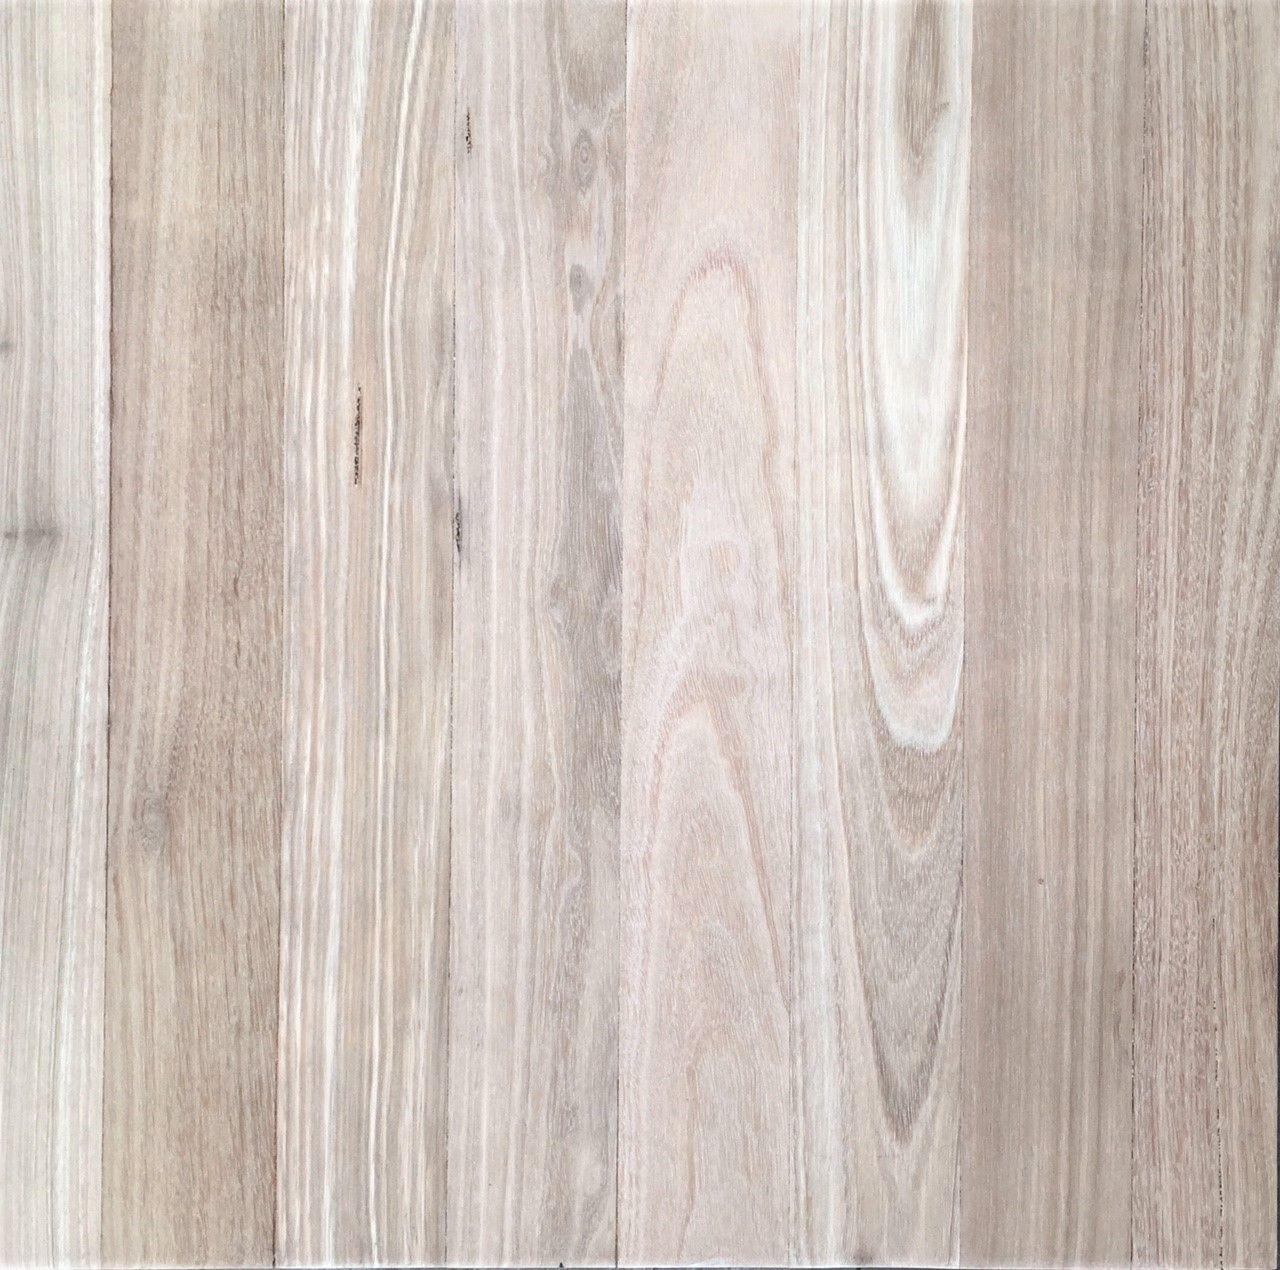 White Wash Oak Stain: How To White Wash/ Lime Wash Wood Flooring